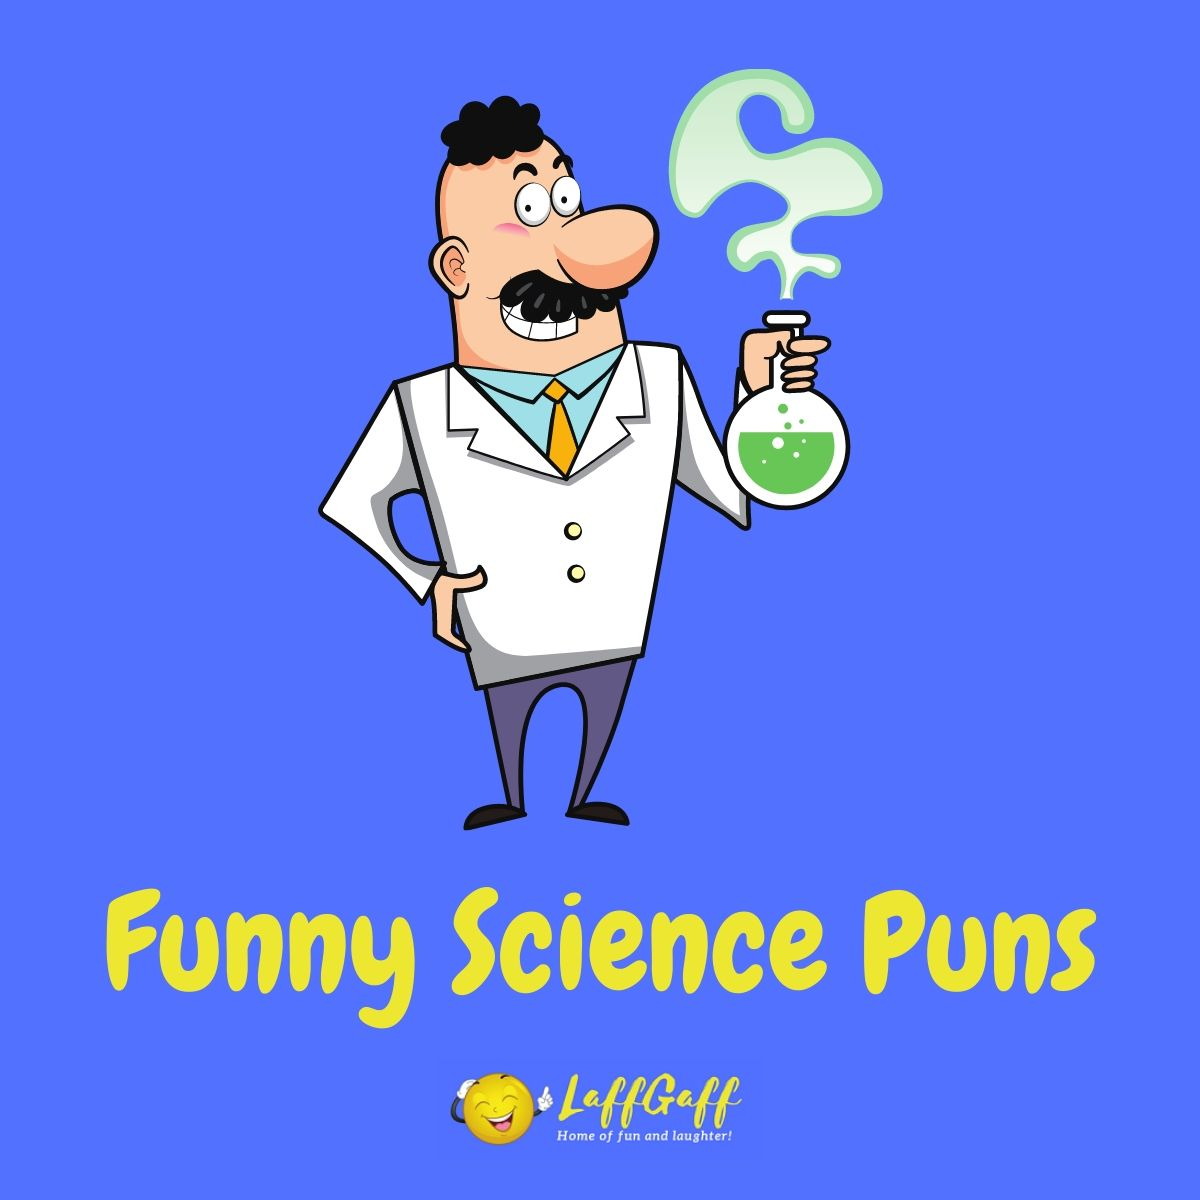 Featured image for a page of funny science puns.